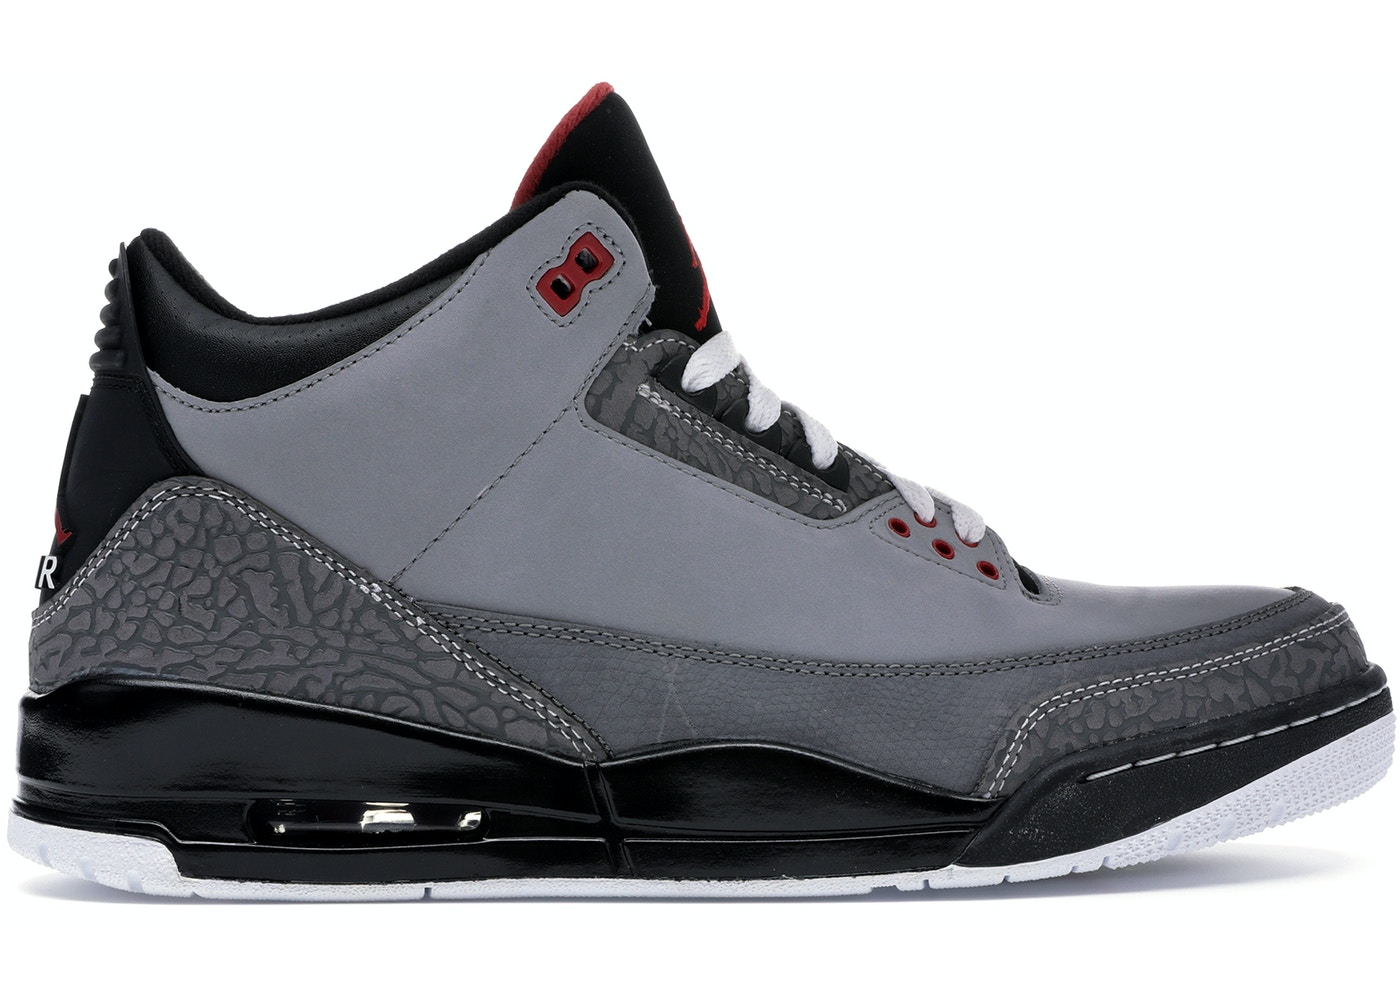 newest 8db35 9e385 Jordan 3 Retro Stealth - 136064-003